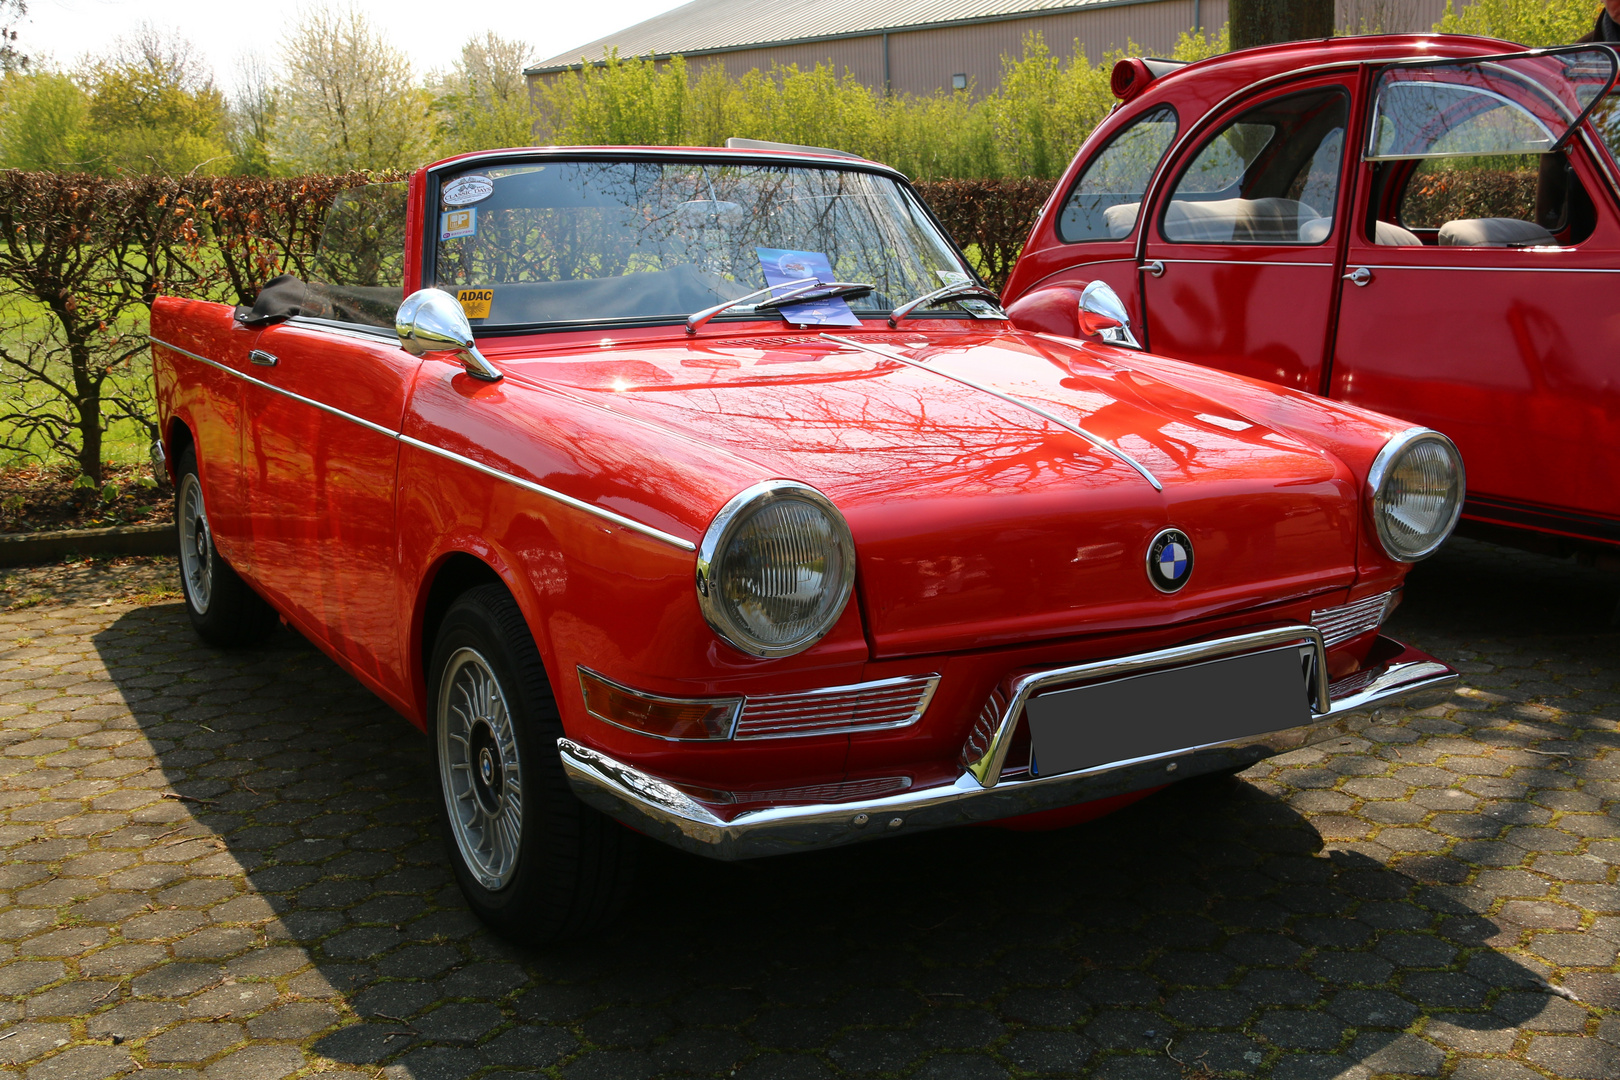 bmw 700 cabrio foto bild oldtimer bmw autos bilder. Black Bedroom Furniture Sets. Home Design Ideas